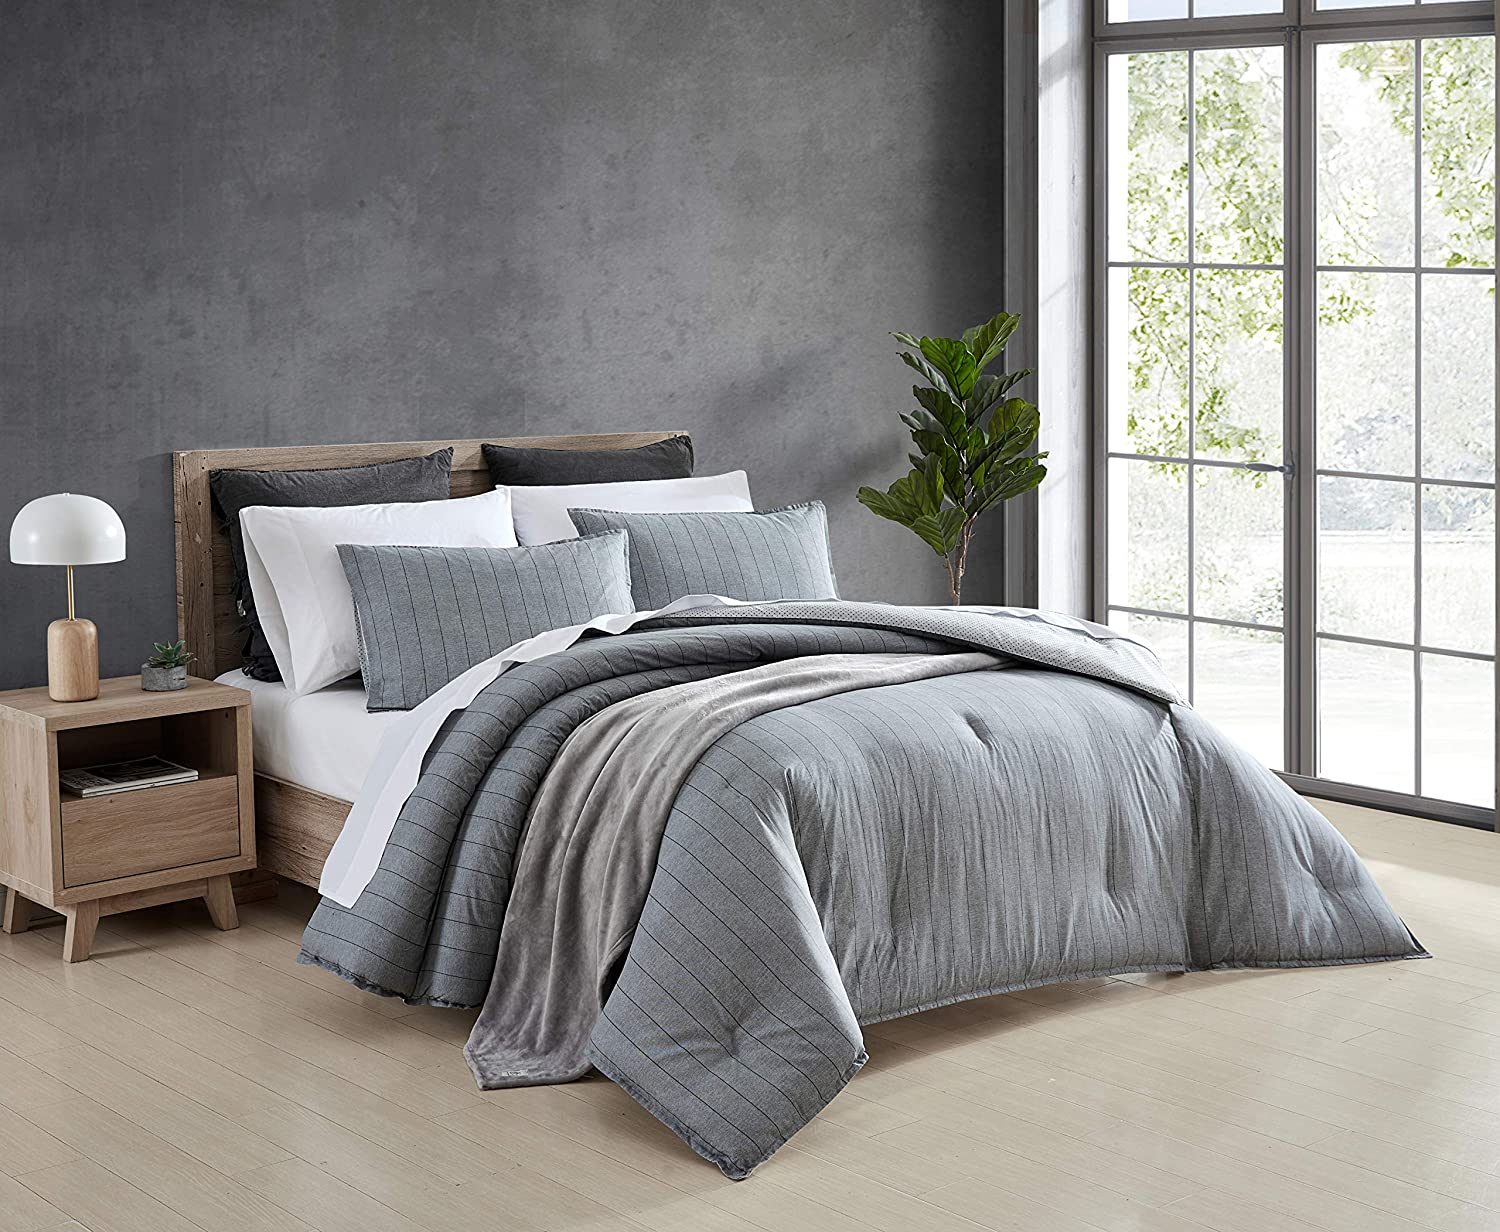 Ed Ellen Degeneres Chambray Pinstripe Collection Comforter Set 100 Cotton Reversible All Season Bedding With Matching Shams Full Queen Grey Home Kitchen